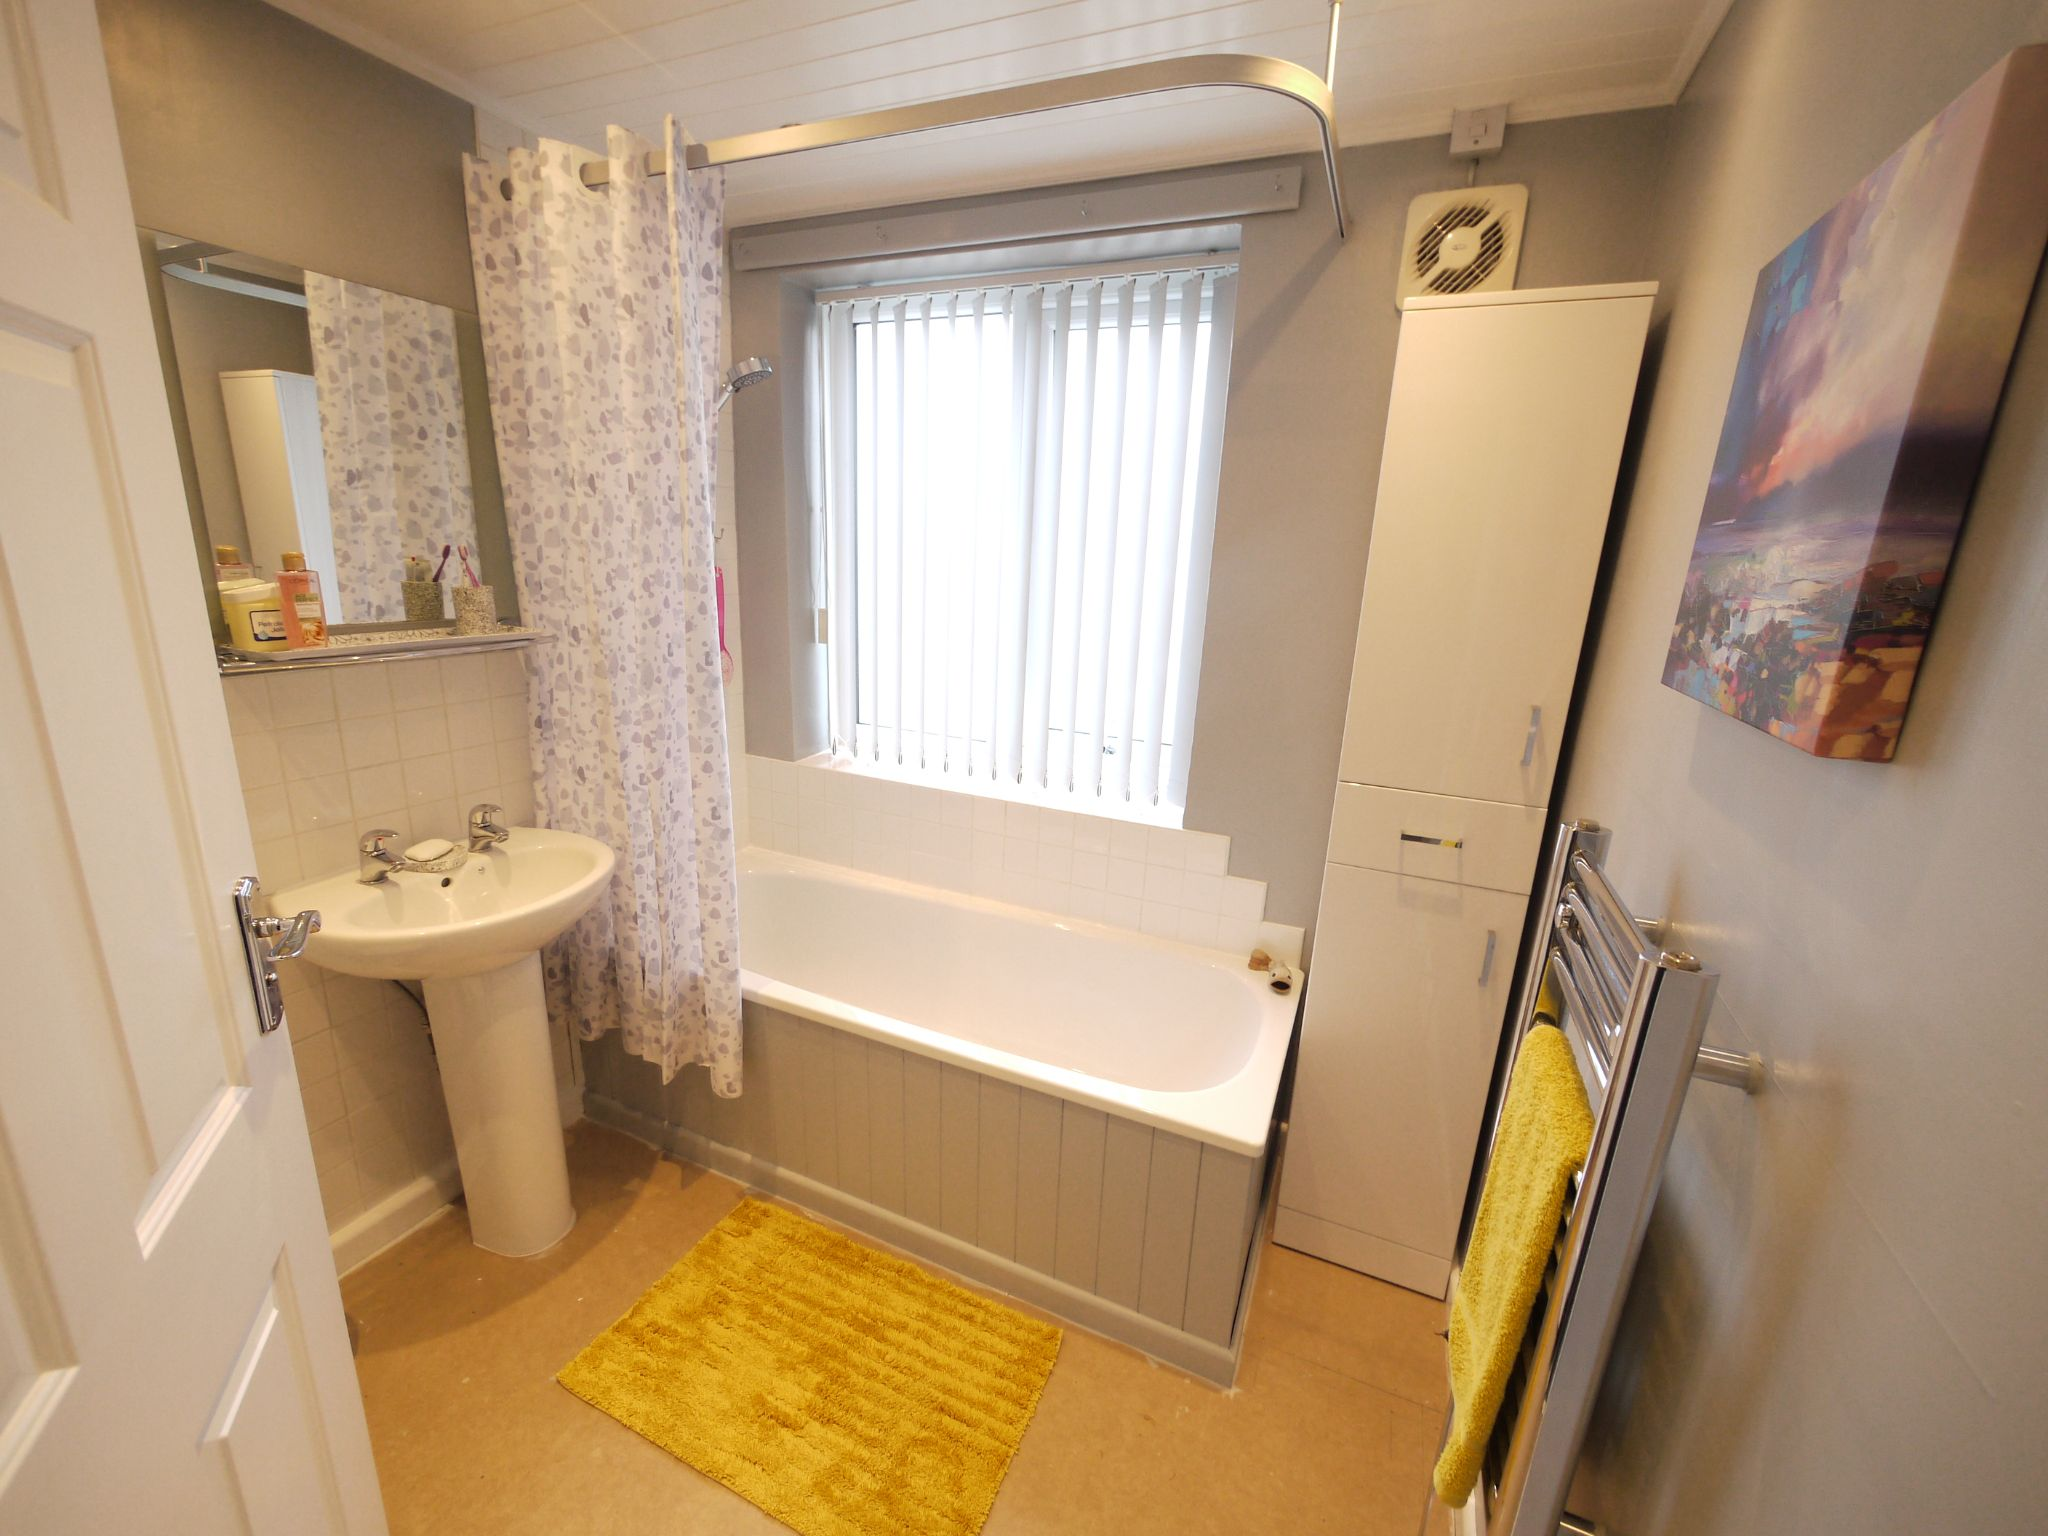 3 bedroom semi-detached house SSTC in Brighouse - Bathroom.